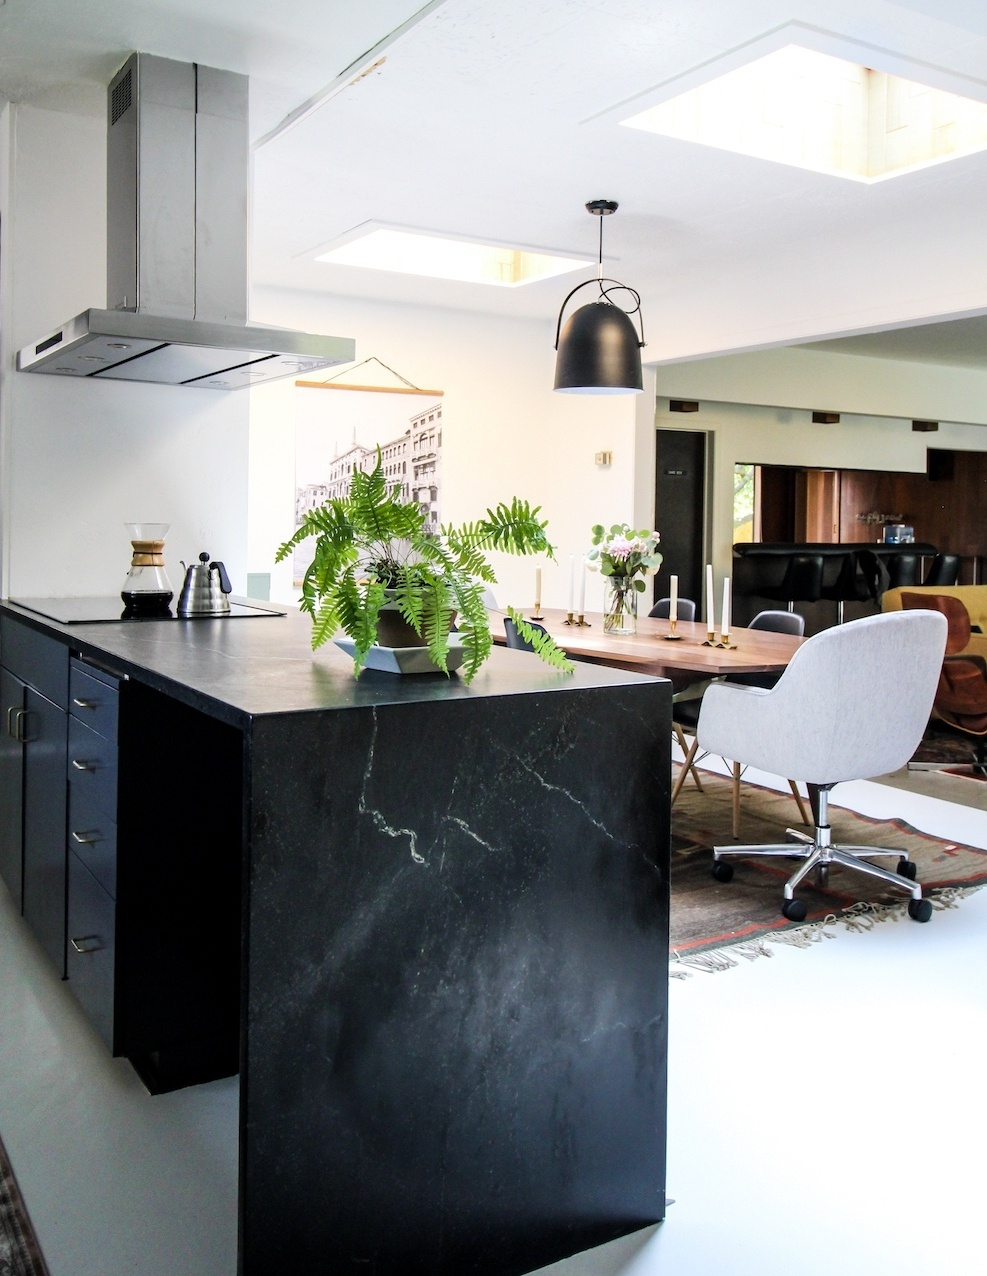 kirsten-grove-simply-grove-waxed-soapstone-countertops-polycor.jpeg